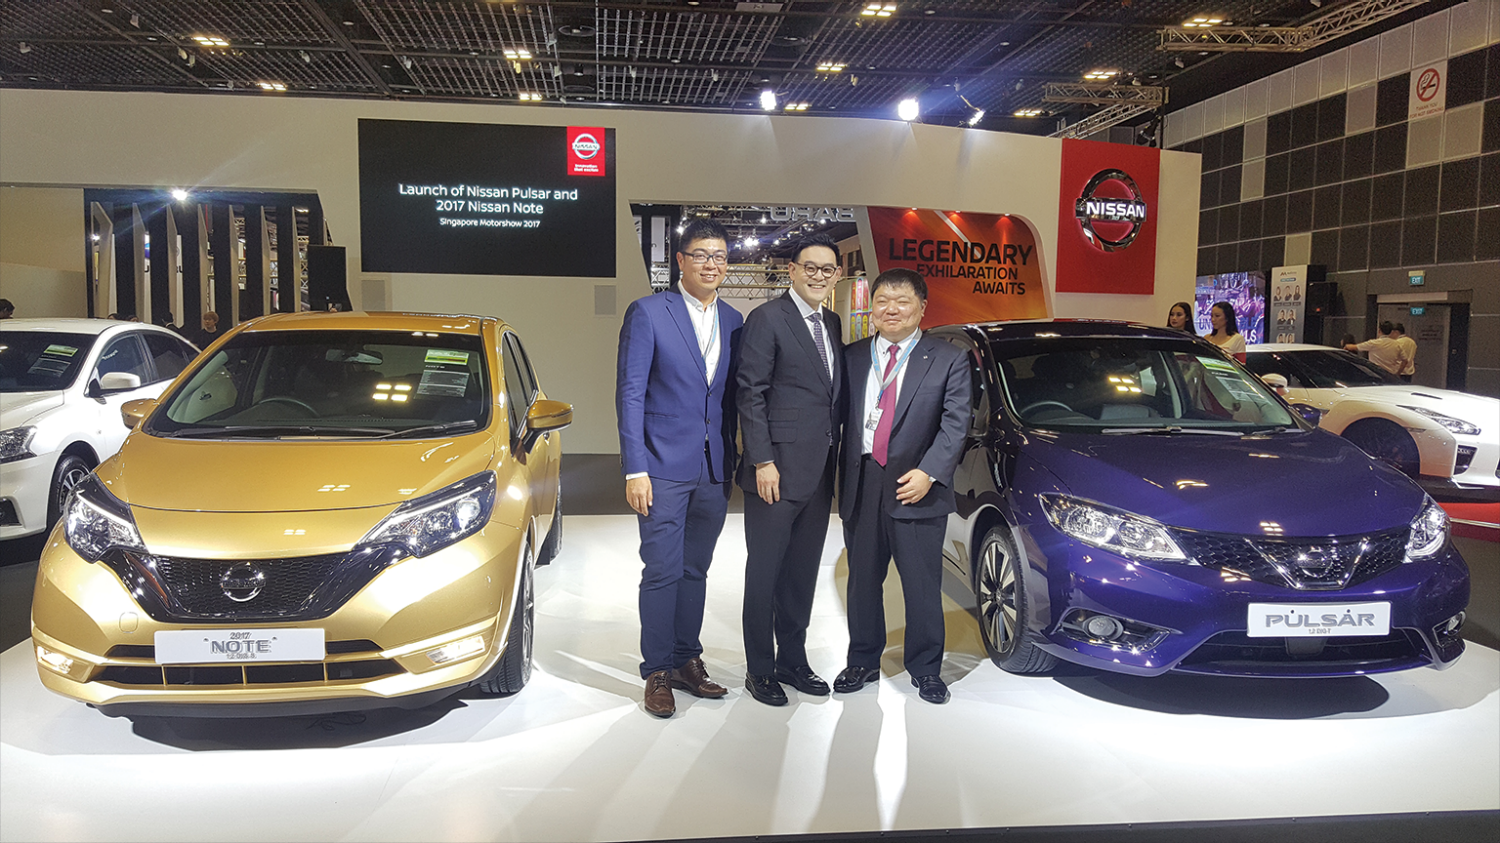 NISSAN LAUNCHES ALL-NEW PULSAR AND NOTE MODELS AT THE SINGAPORE MOTORSHOW 2017